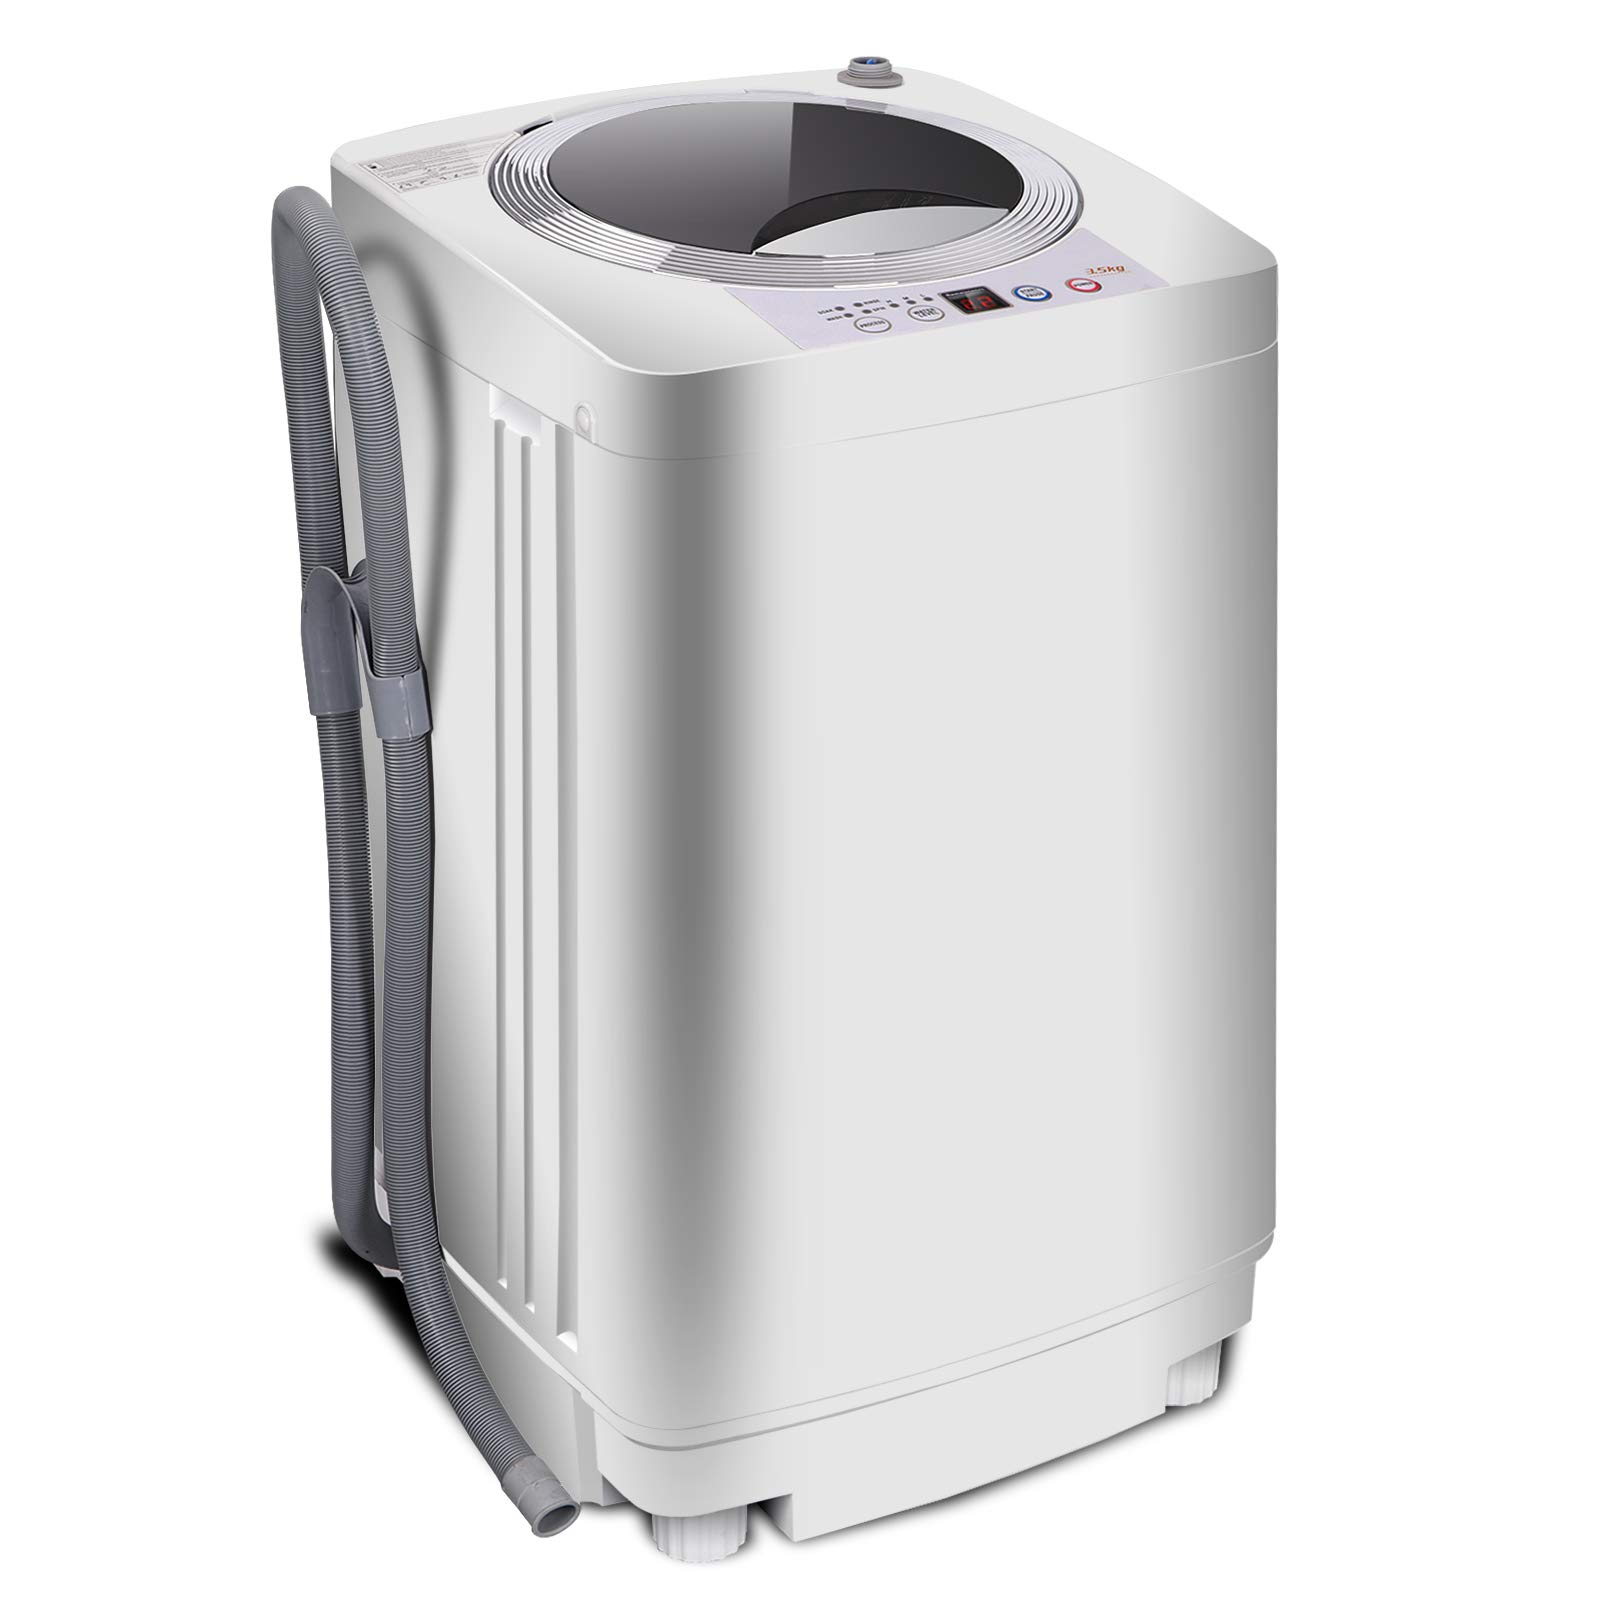 SUPER DEAL PRO Portable Full-Automatic Washing Machine 1.6 Cu. ft. Spacious Load 2in1 Washer&Spinner w/Drain Pump and Long Hose by SUPER DEAL